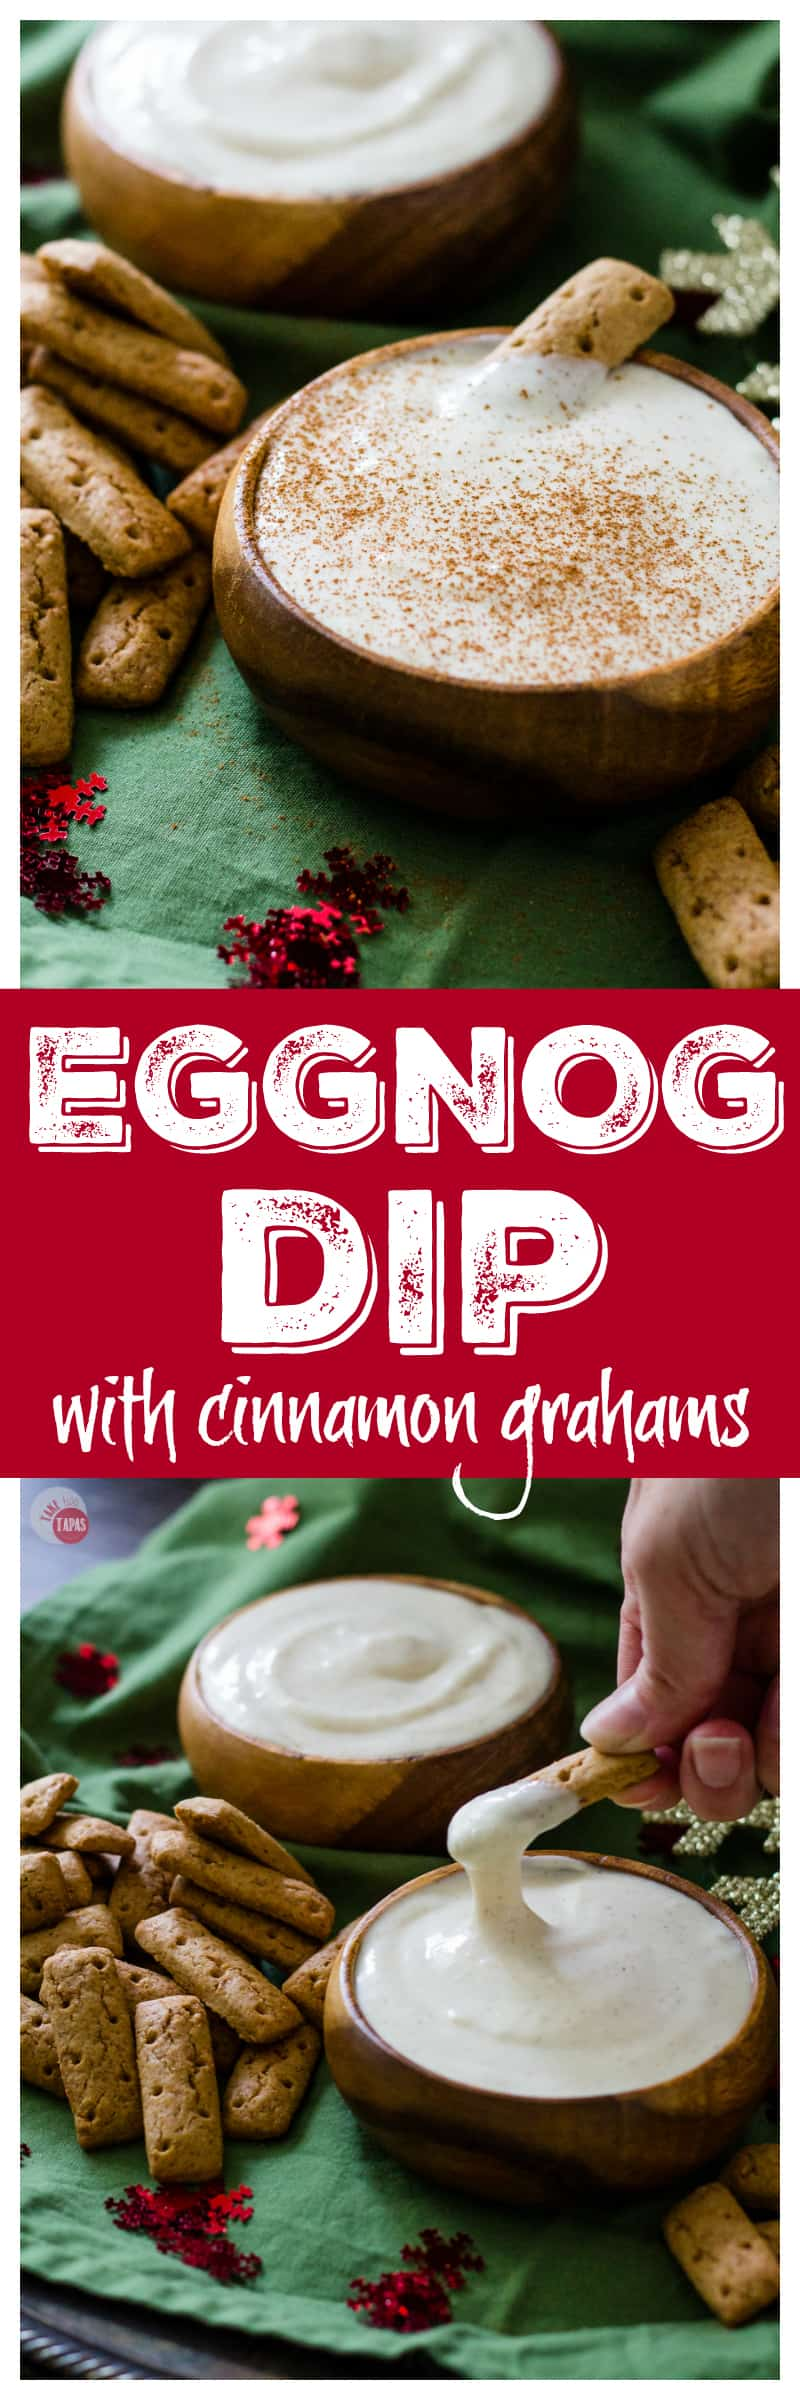 Spiked Eggnog Dip will transform your holiday party! | Take Two Tapas | #eggnog #spikedeggnog #dip #Spiked #Christmas #Spikedeggnogdip #Eggnogdip #HolidayRecipes #holidayParty